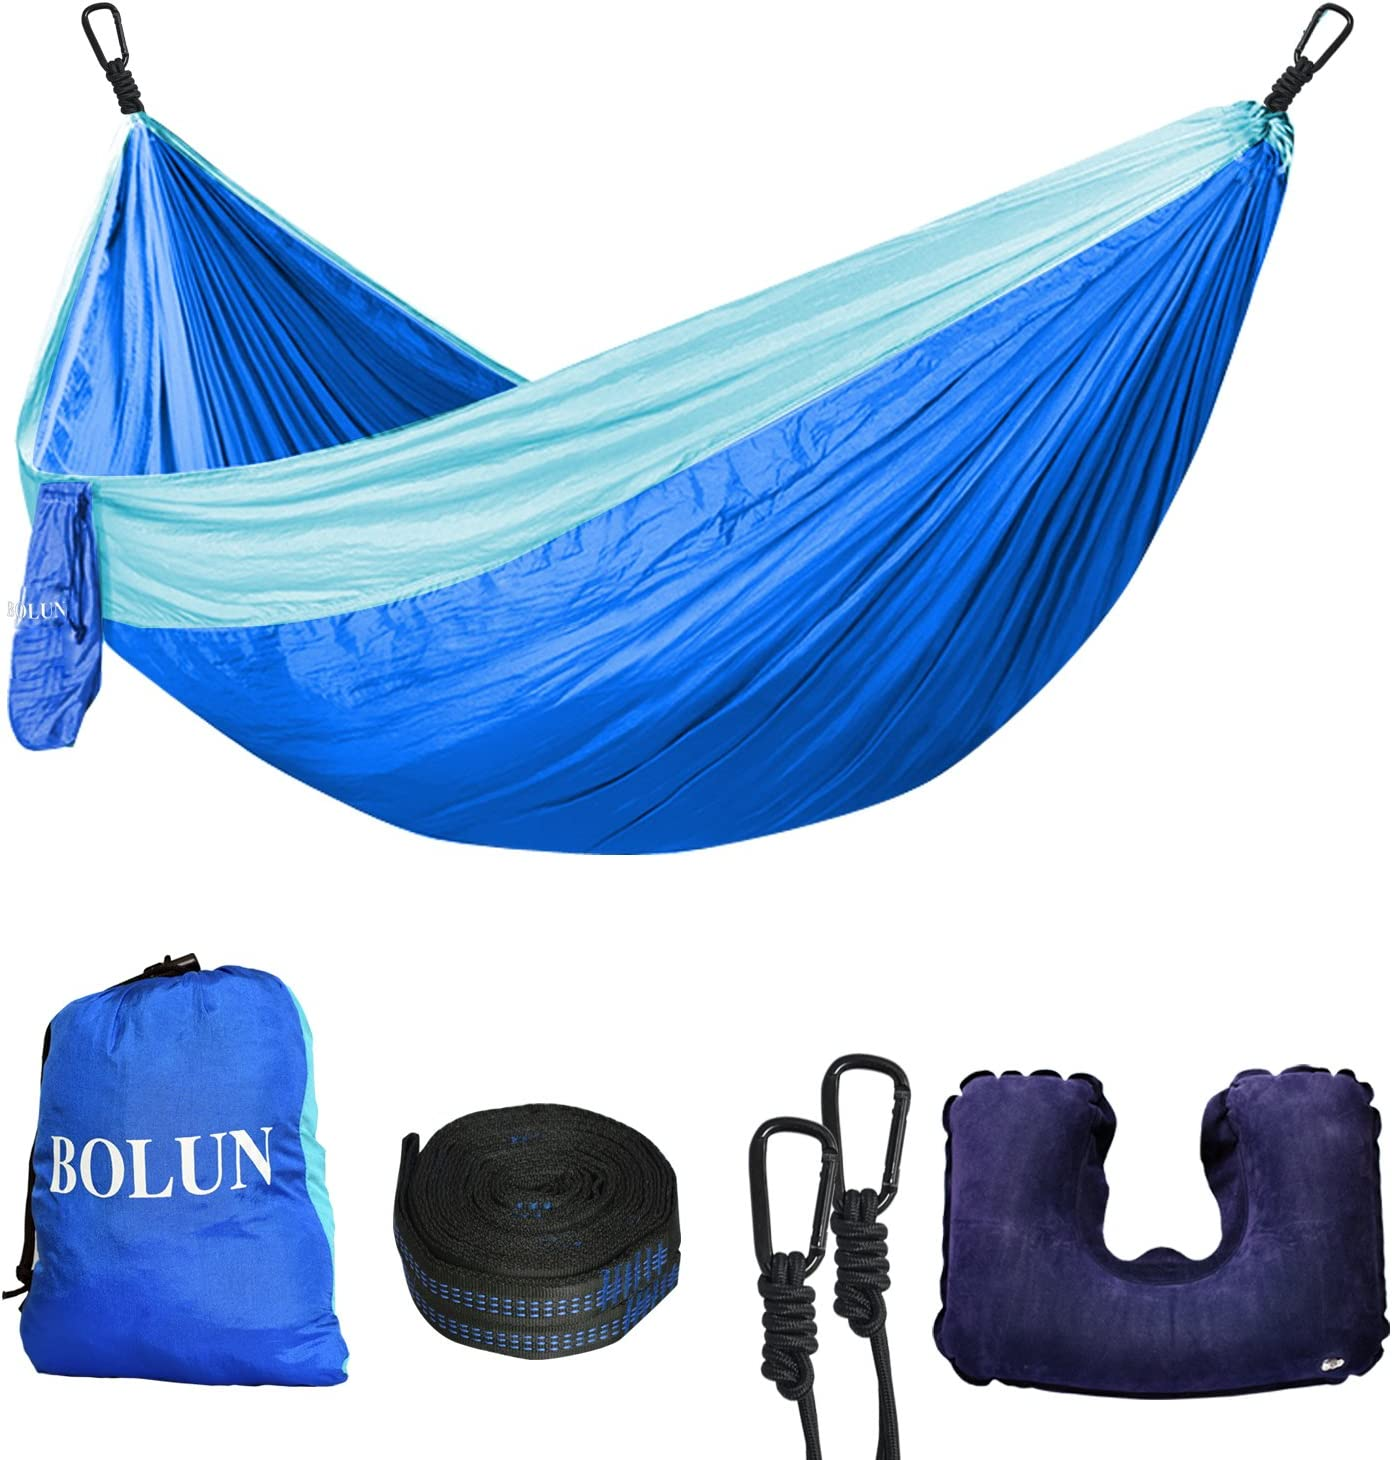 Camping Hammock Portable Lightweight Parachute Nylon Hammock with Tree Straps for Camping Travel Beach Yard Sky Blue and Blue